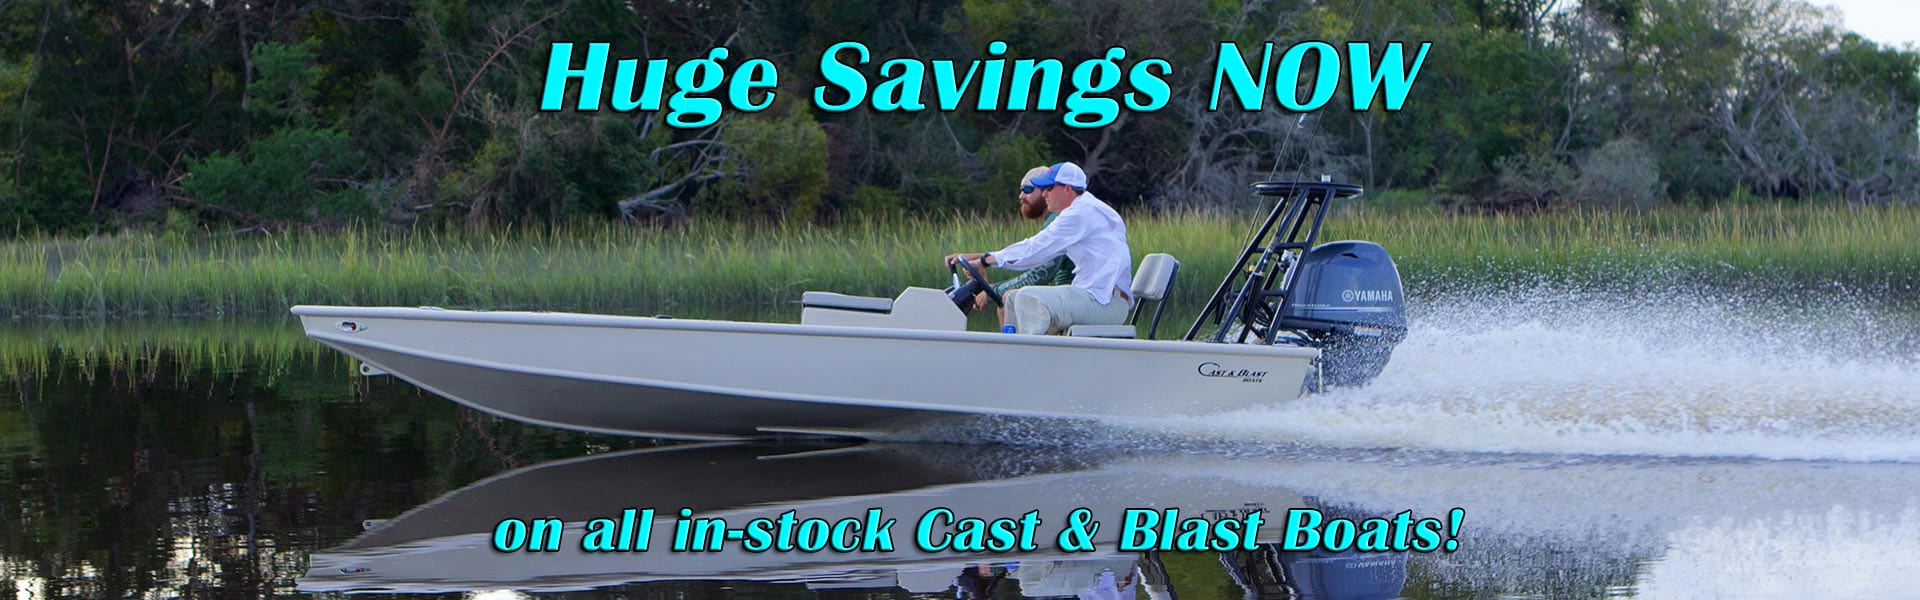 Cast and Blast Savings-marquee.jpg